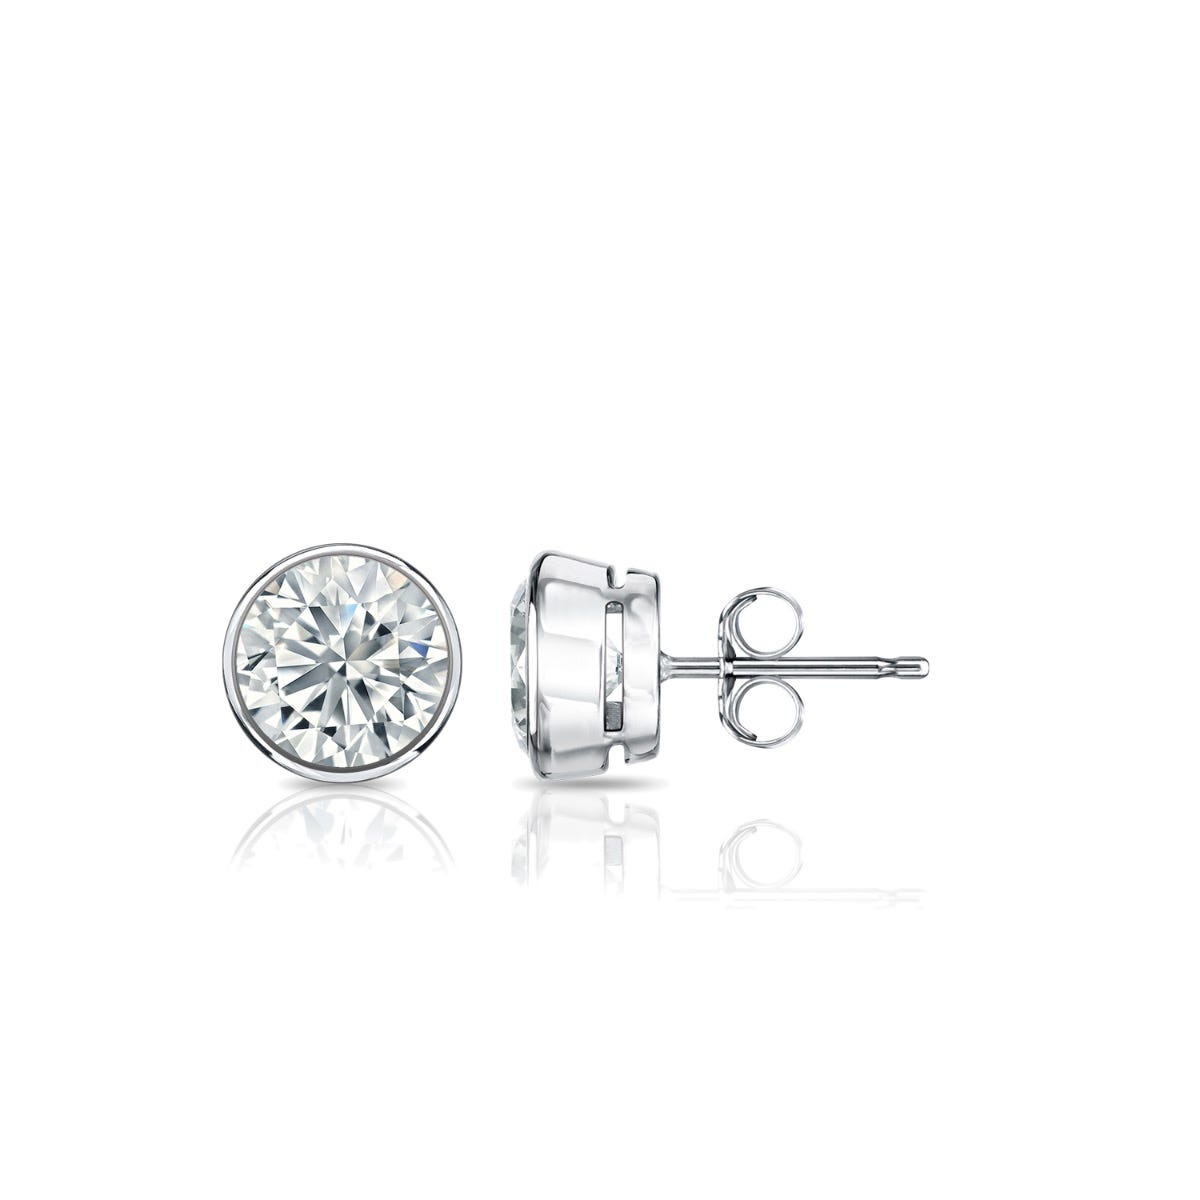 Diamond Round Bezel-Set 5/8ctw. Solitaire Stud (IJ-SI2) Earrings in 18K White Gold